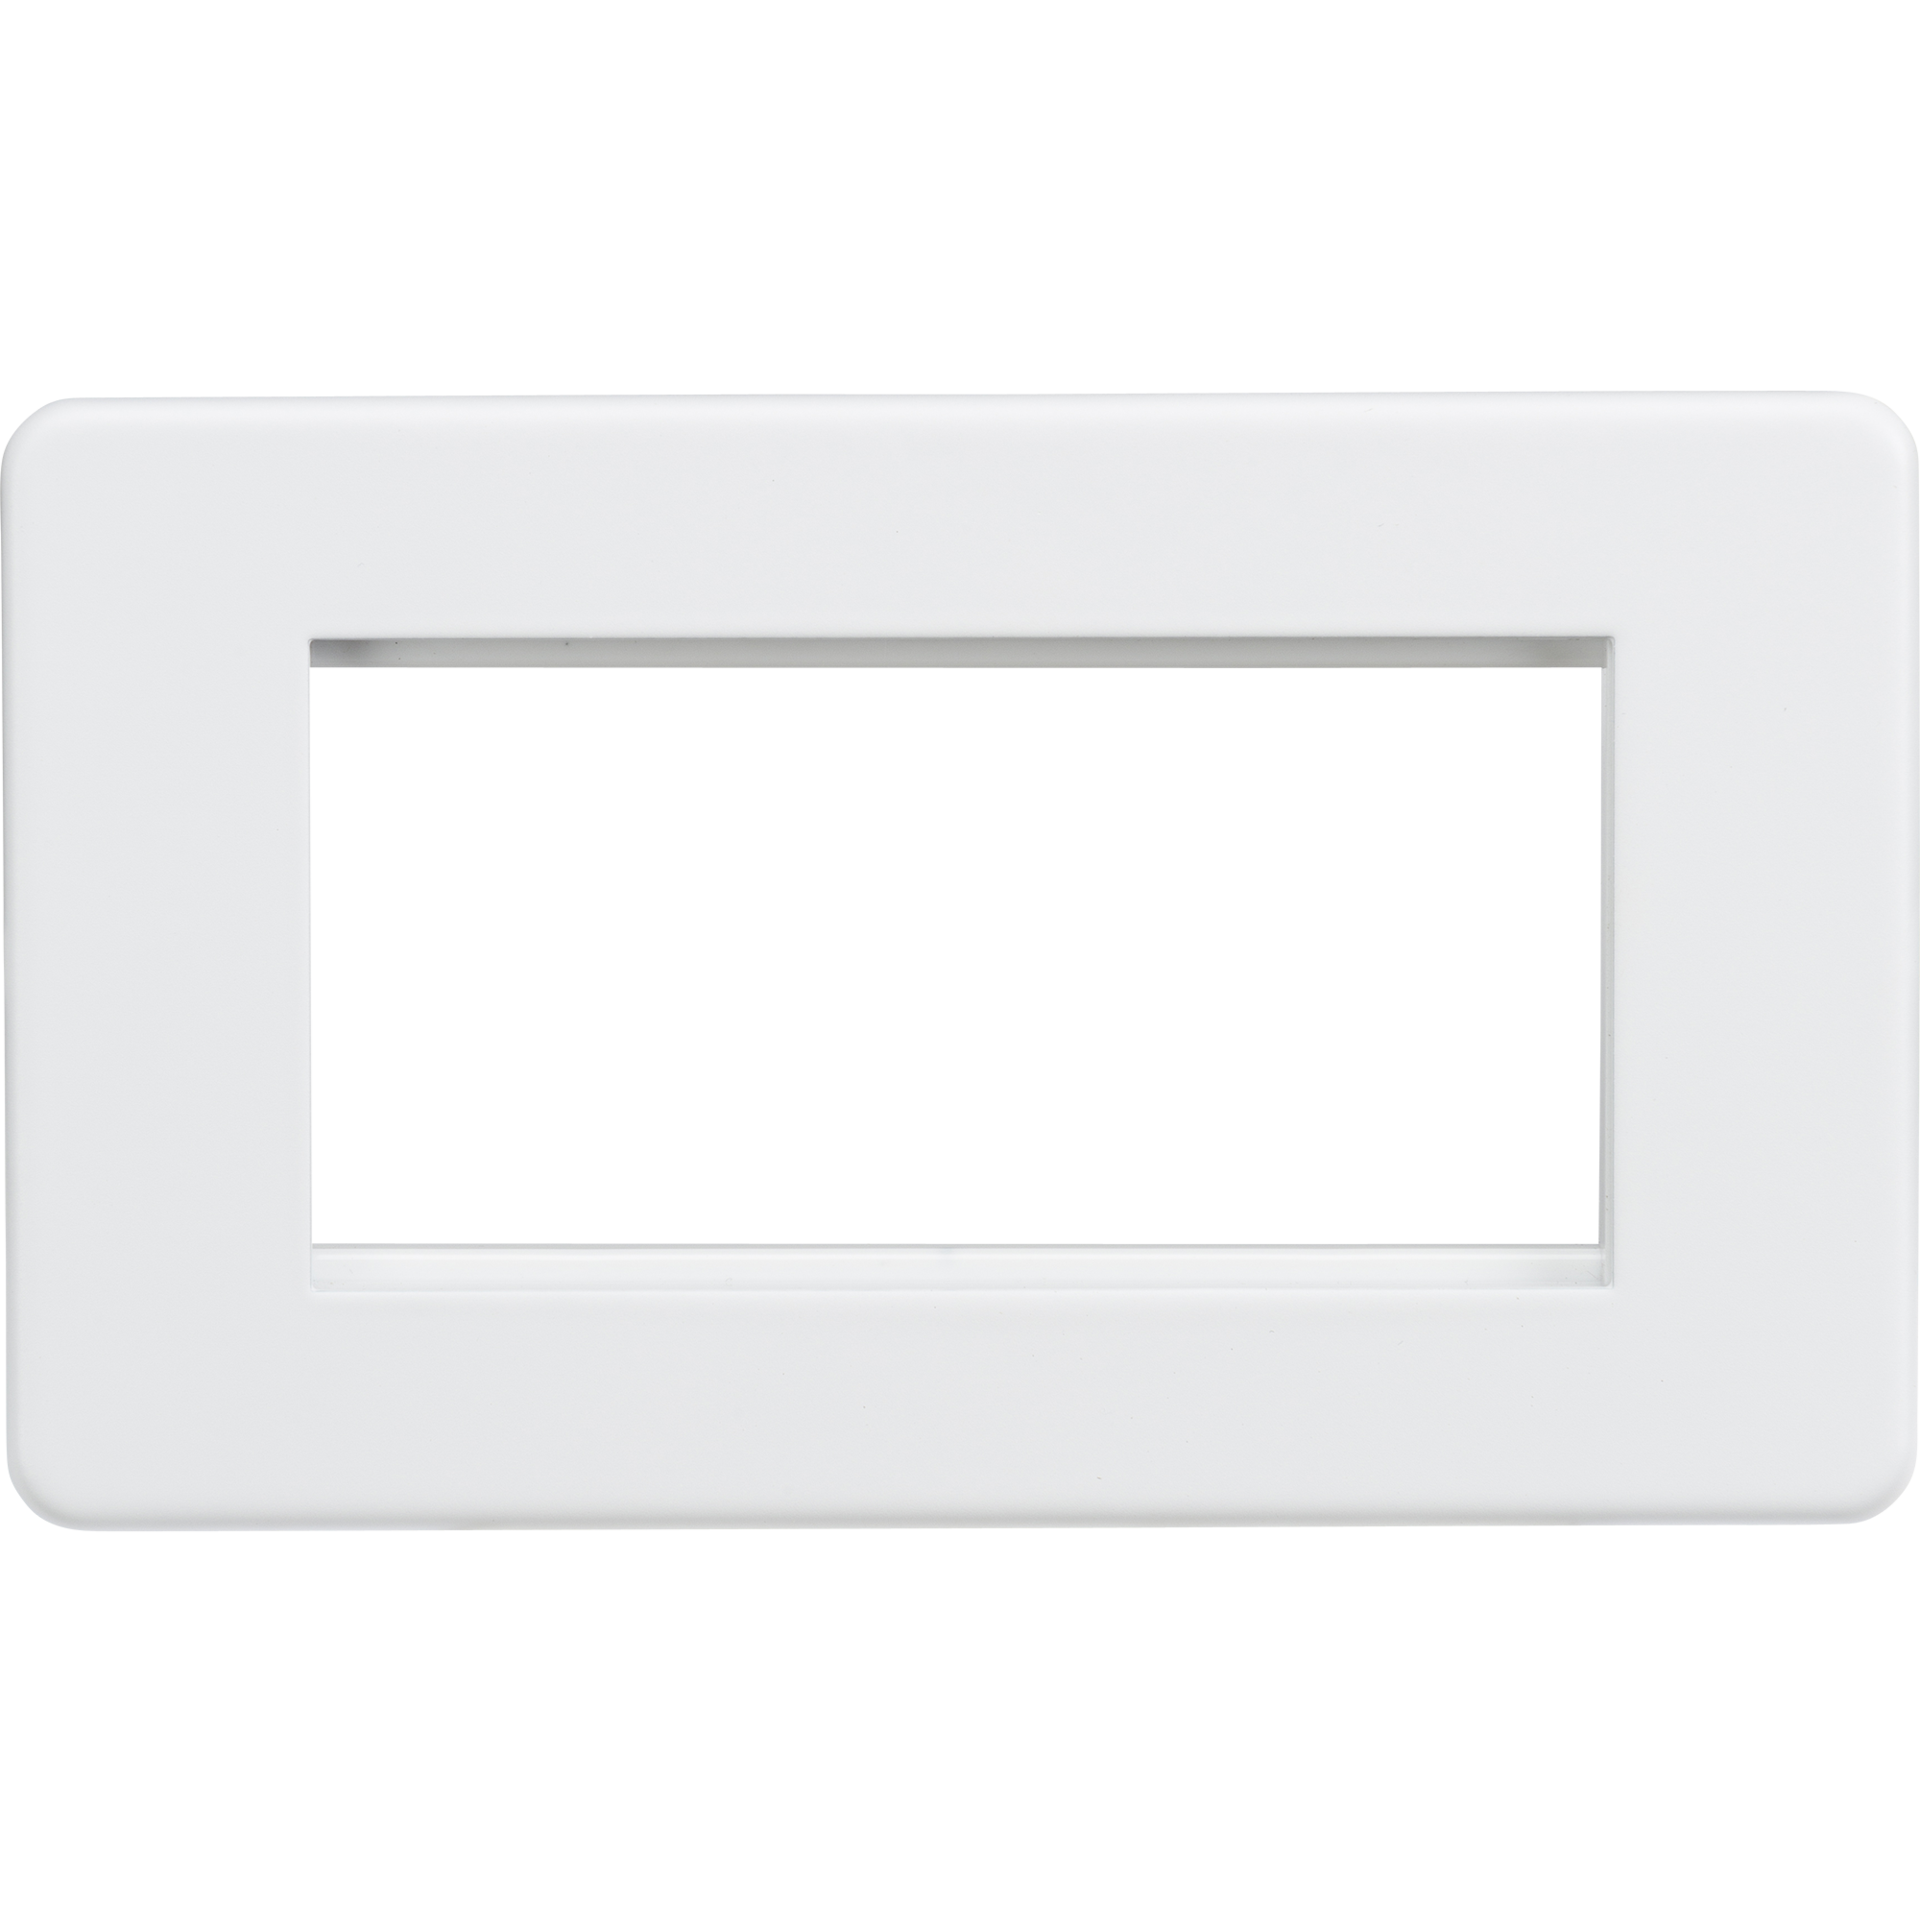 Screwless 4G modular faceplate - Matt white